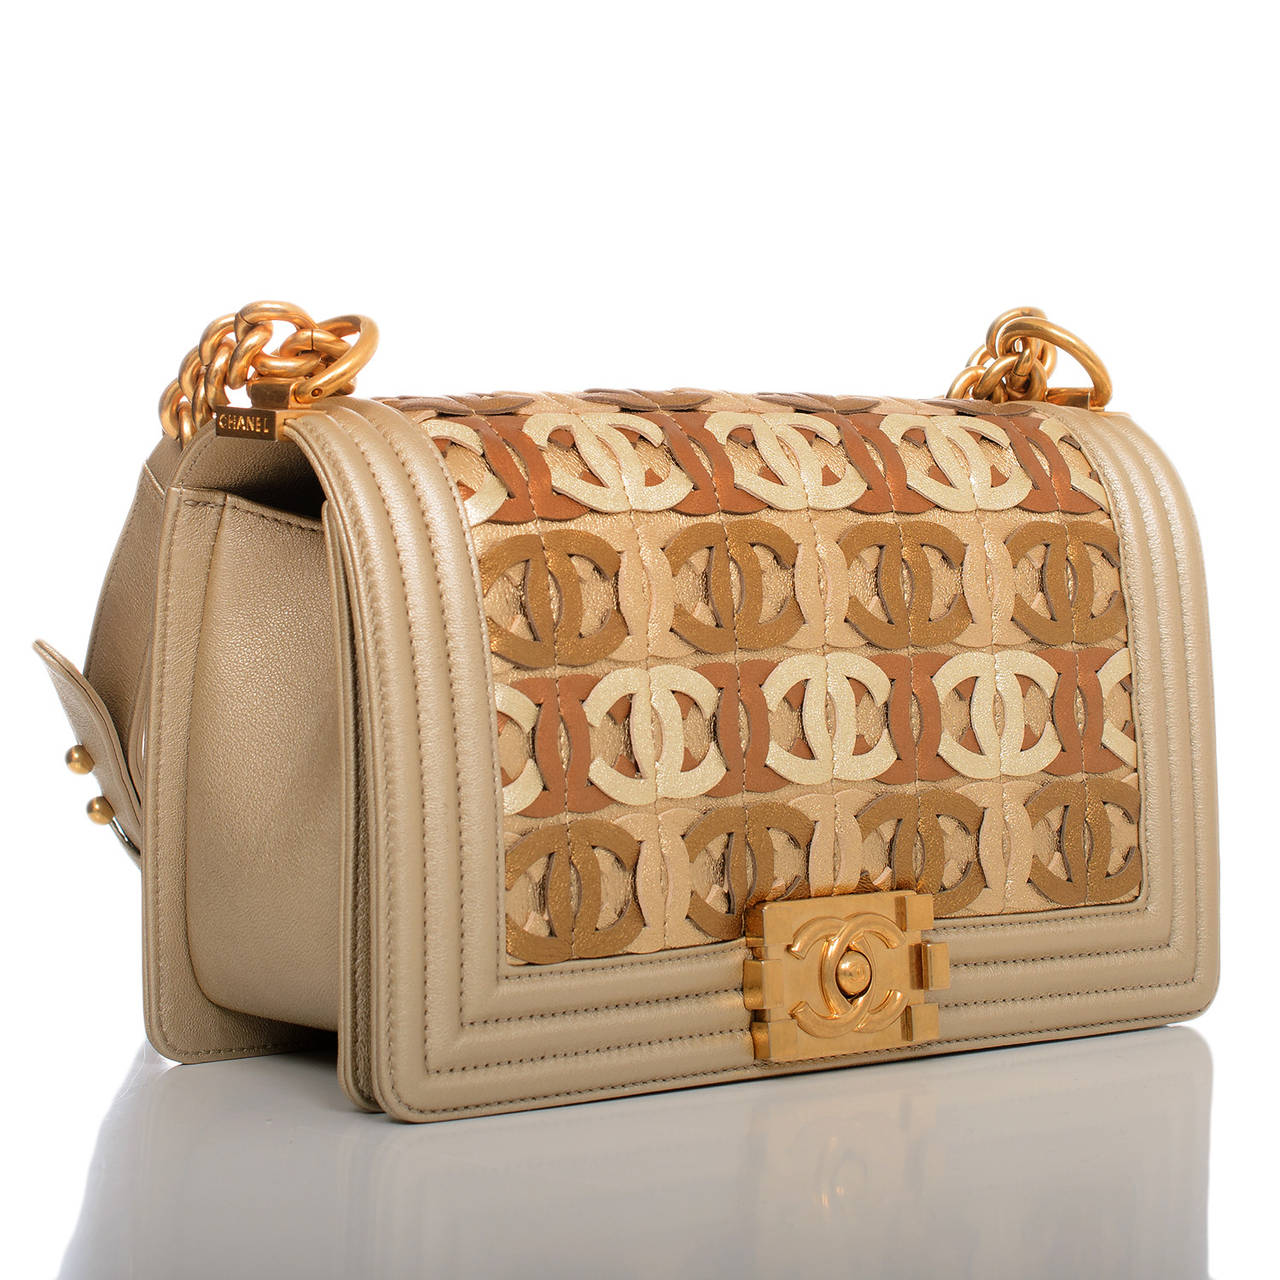 This limited edition bag was a highlight of Chanel's runway collection and is acclaimed by fashion blogs and fashion media worldwide as one of the top handbags of the season. The Medium boy marries gold metallic lambskin leather with antiqued gold